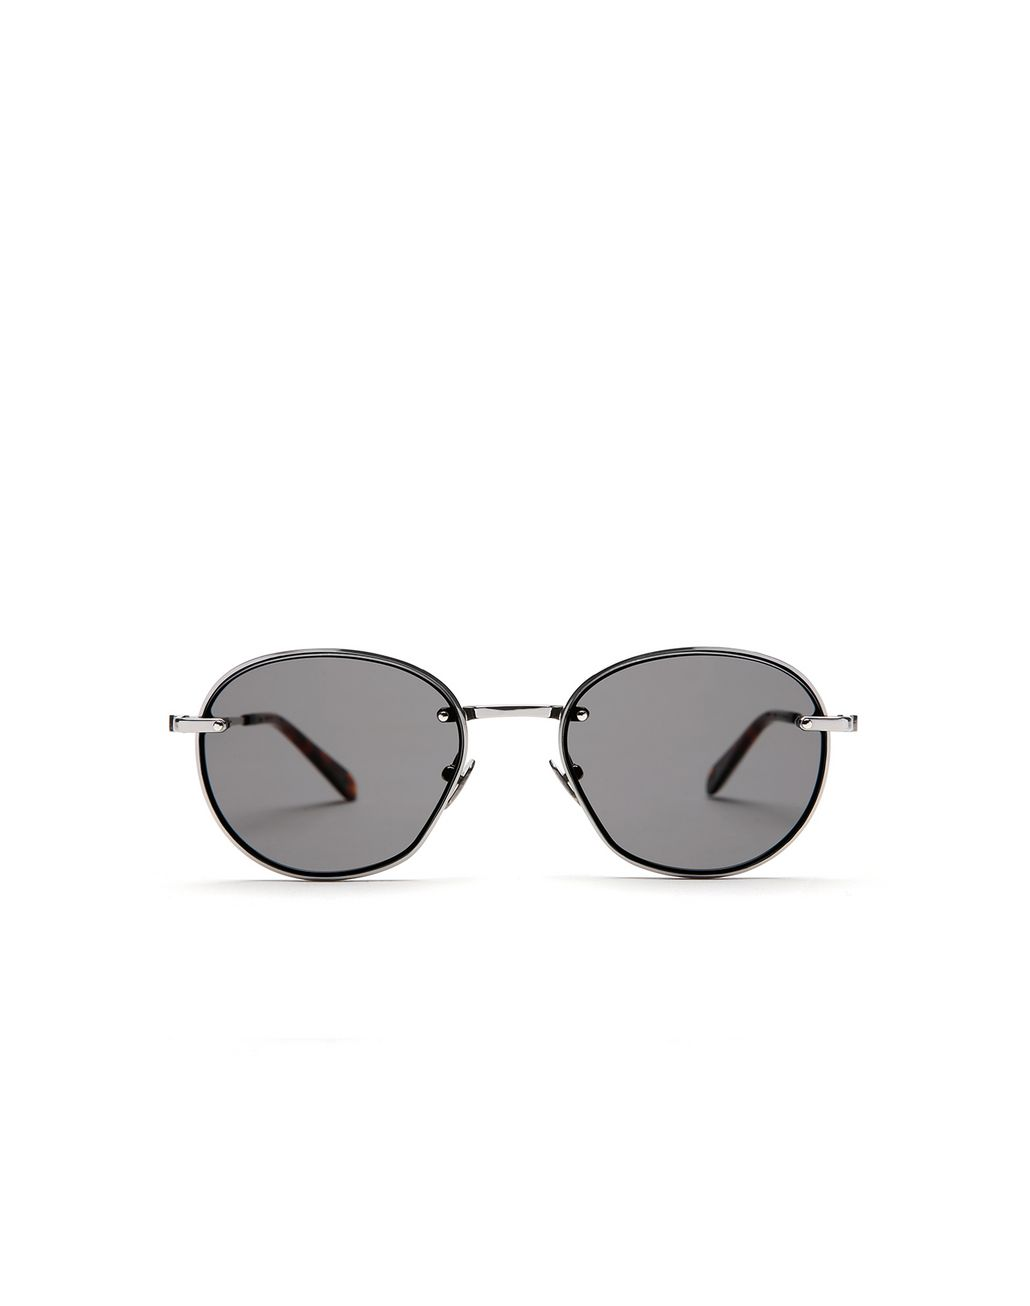 BRIONI Silver Rounded Titanium Sunglasses with Grey Lenses  Sunglasses [*** pickupInStoreShippingNotGuaranteed_info ***] f